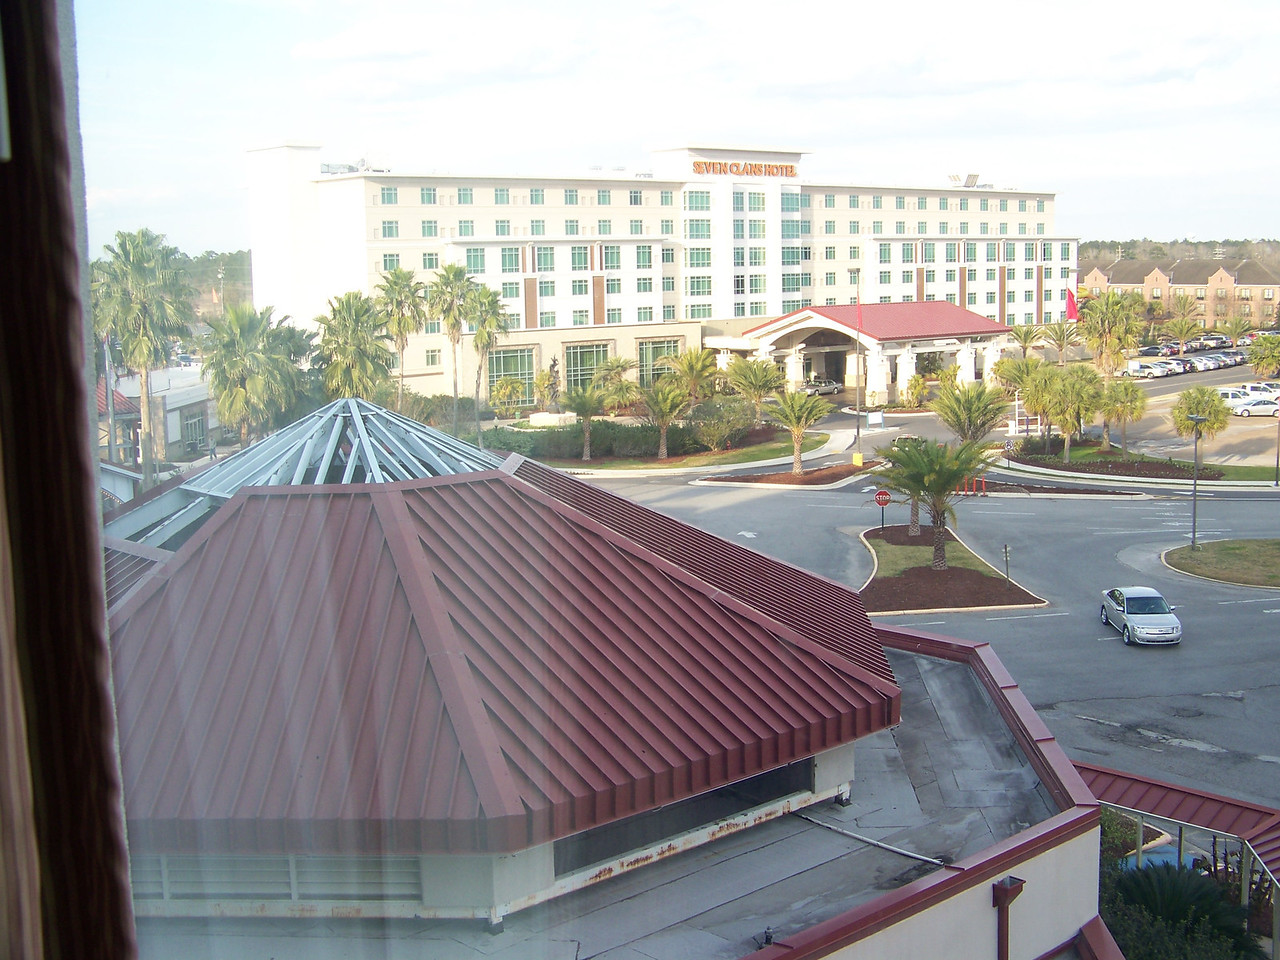 Looking out the window of our room at the Grand Hotel, we could see their other hotel, which is called the Seven Clans Hotel.  The casino at ground level connects the two hotels.<br /> [Coushatta Casino Resort]